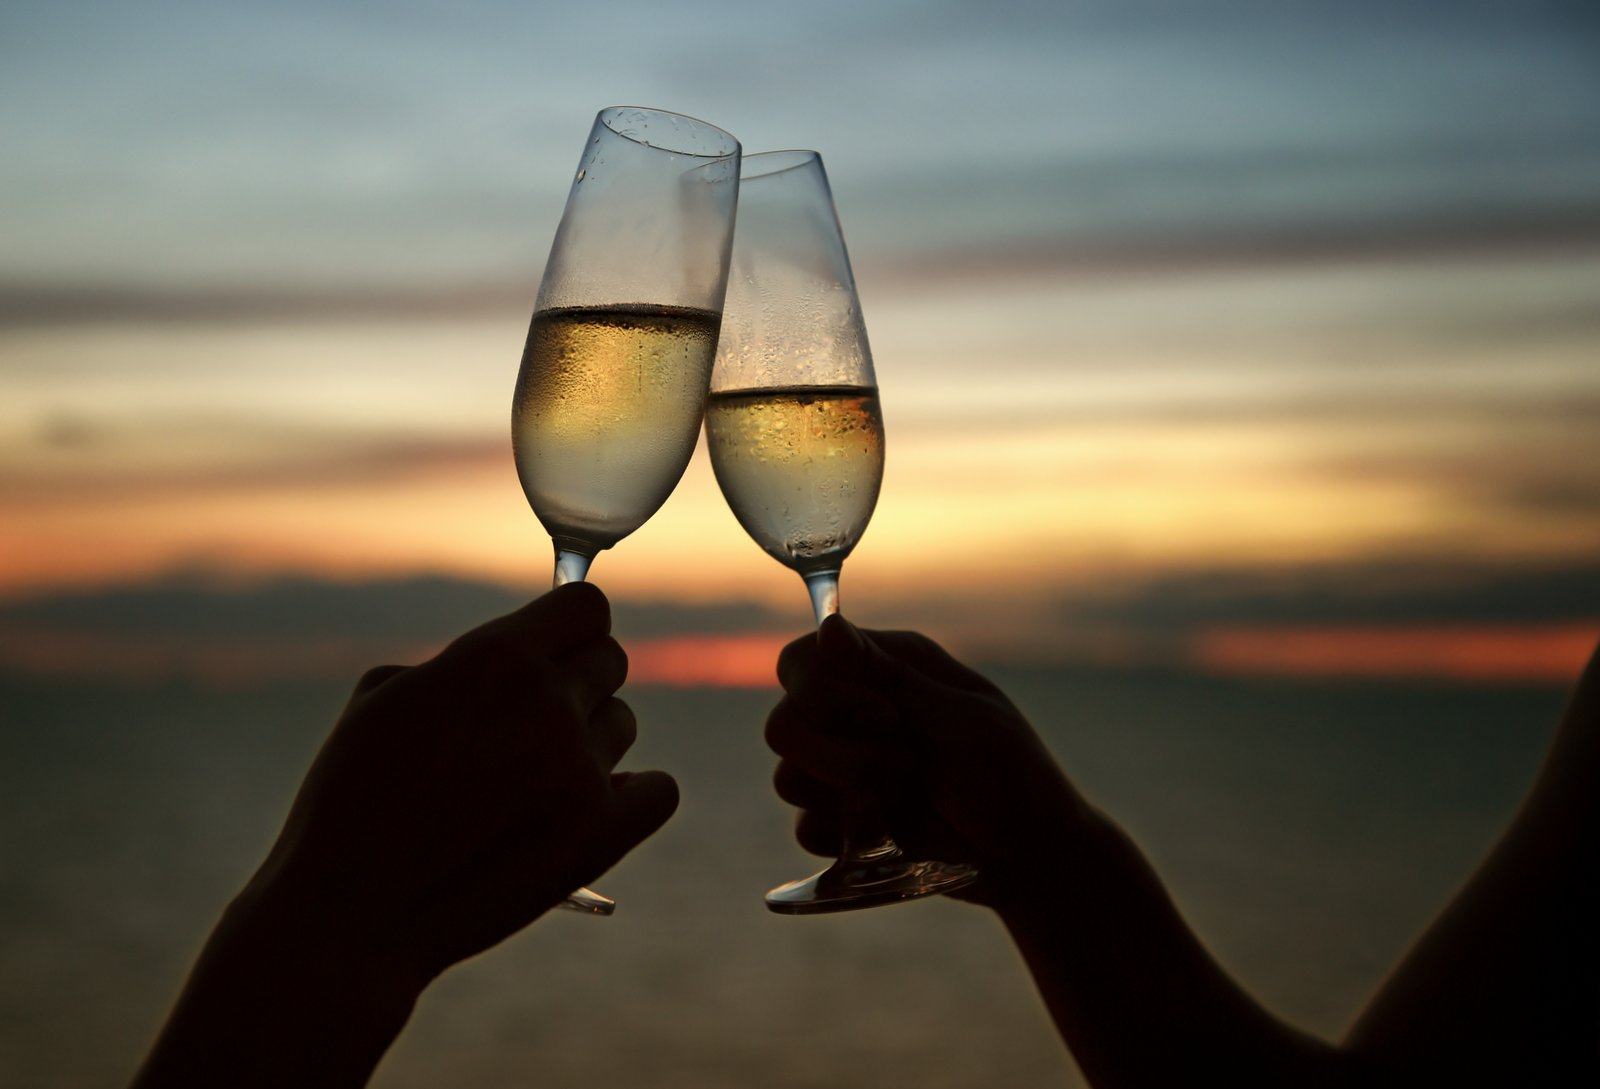 Cheers with Champagne classes on the beach in Hua Hin, Thailand